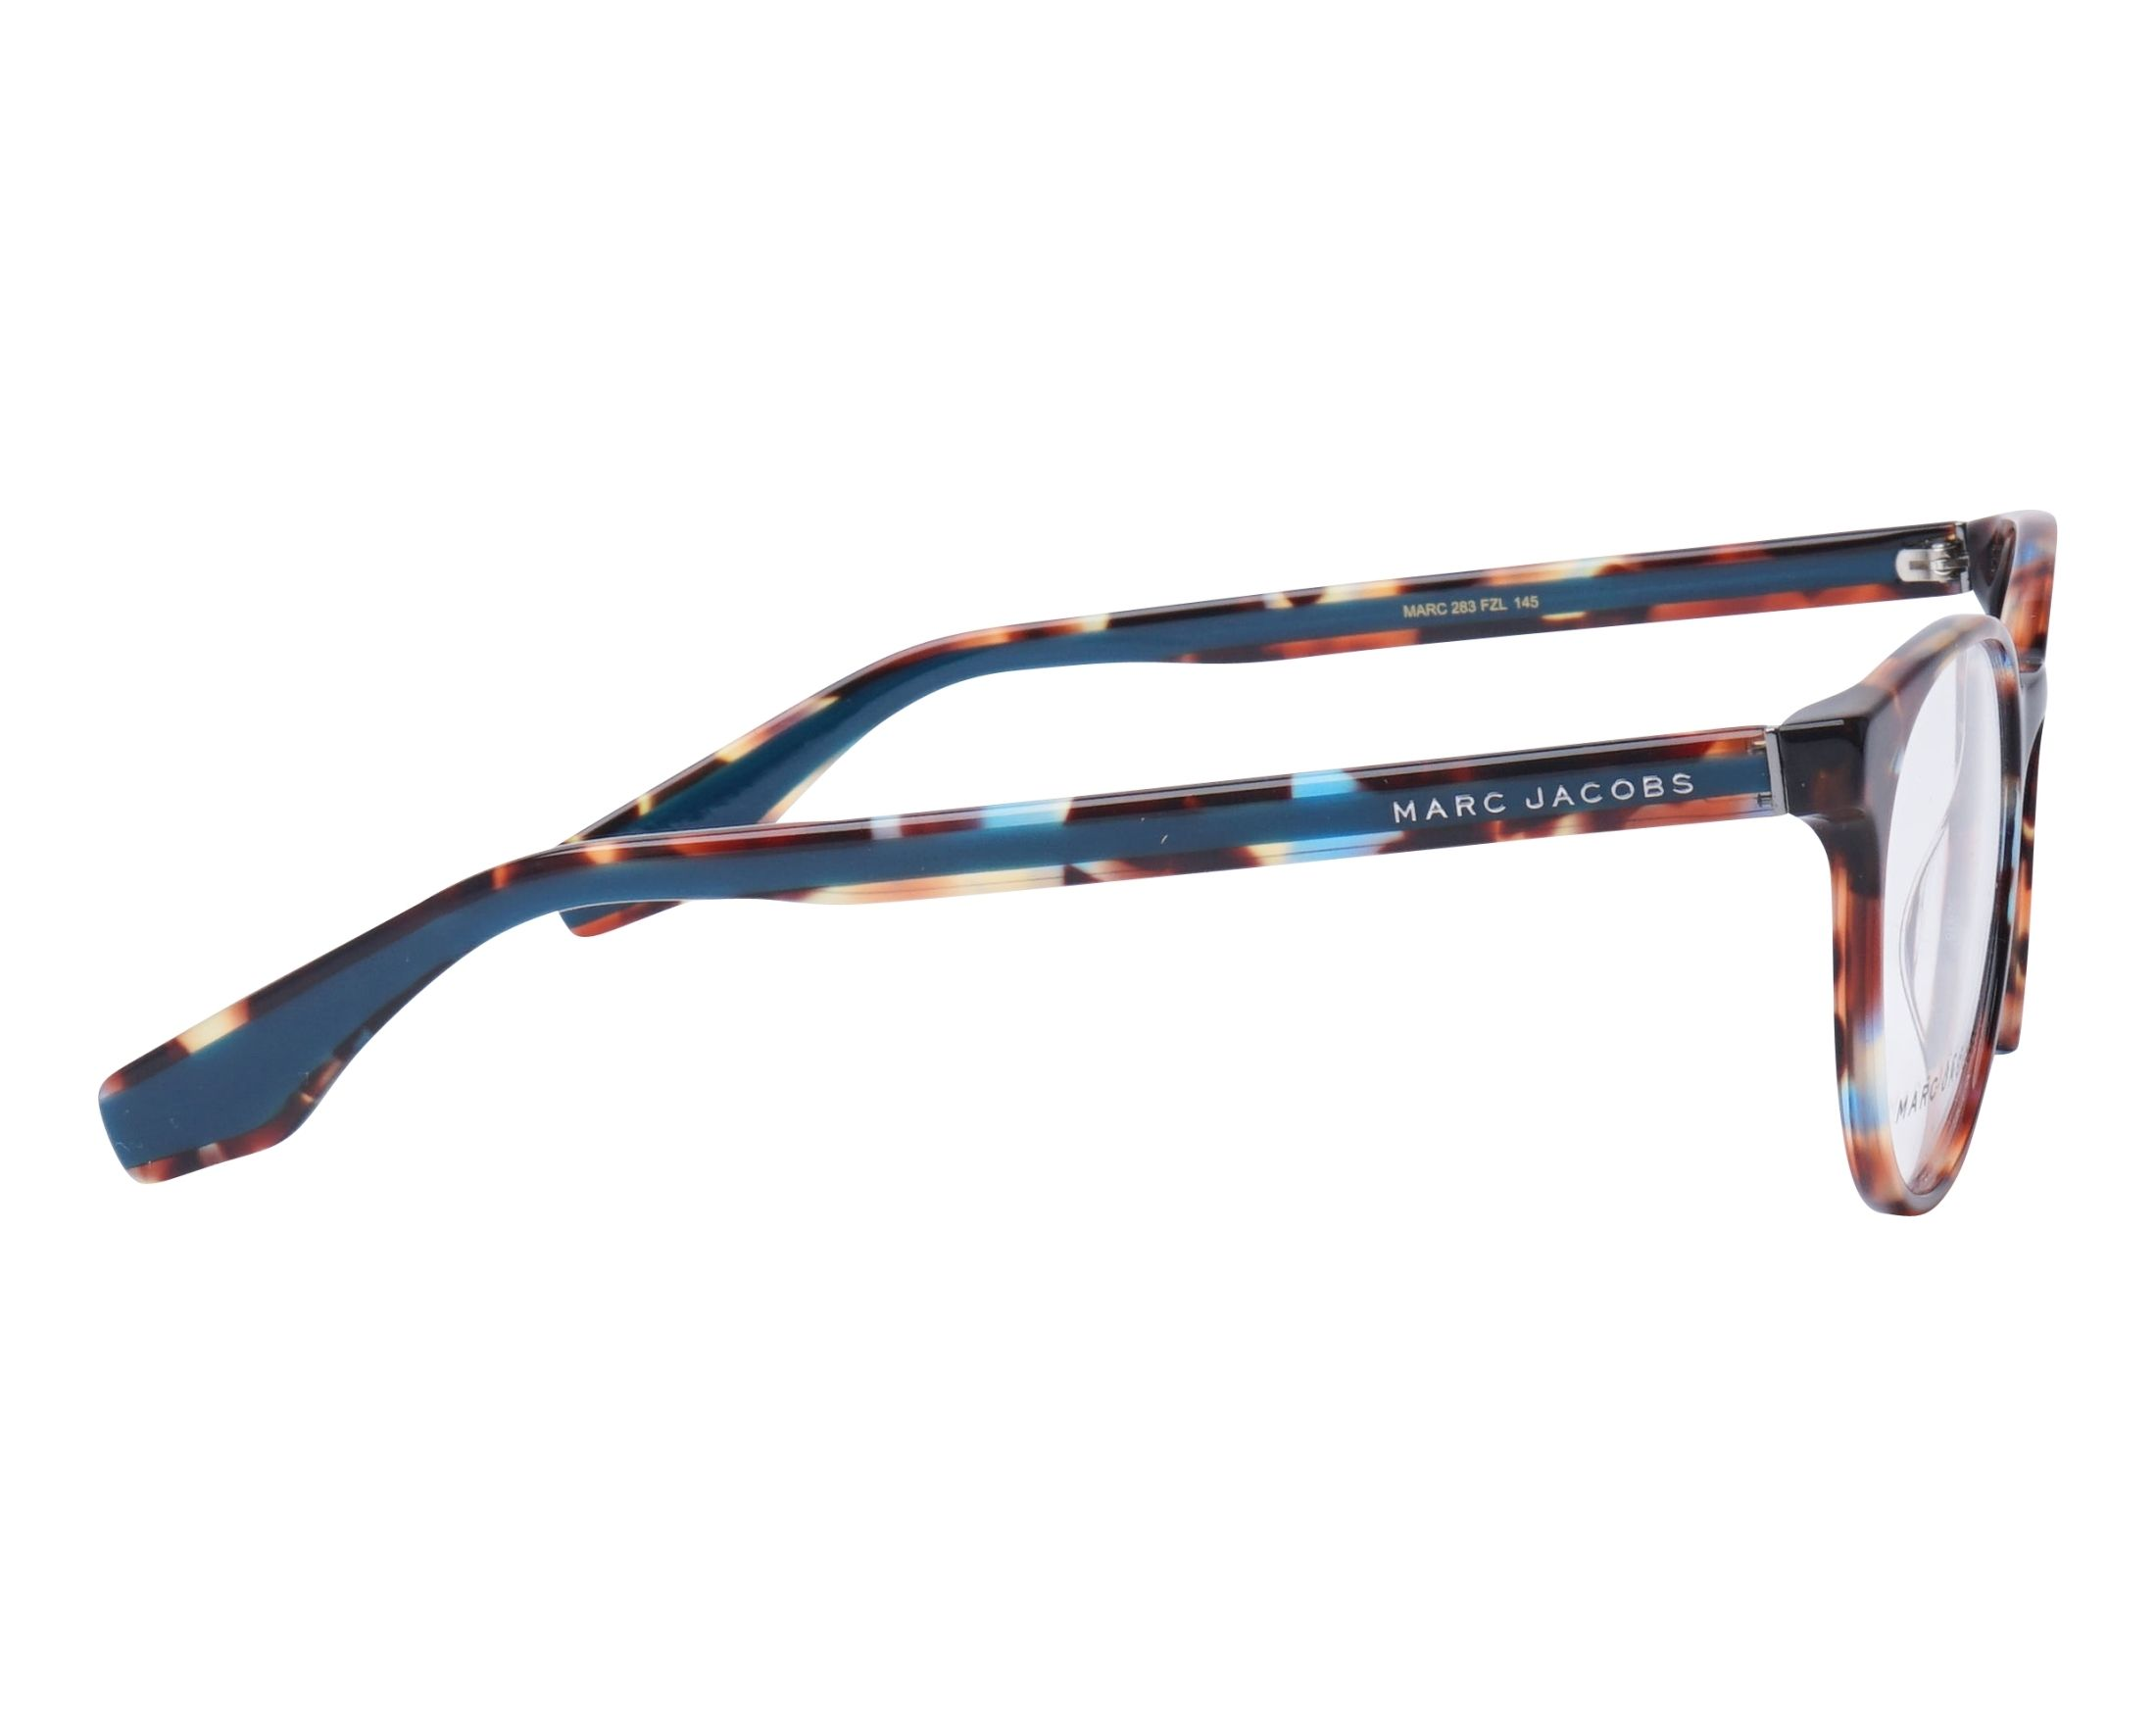 385a1fe0055 eyeglasses Marc Jacobs MARC-283 FZL 52-18 Mix Turquoise side view